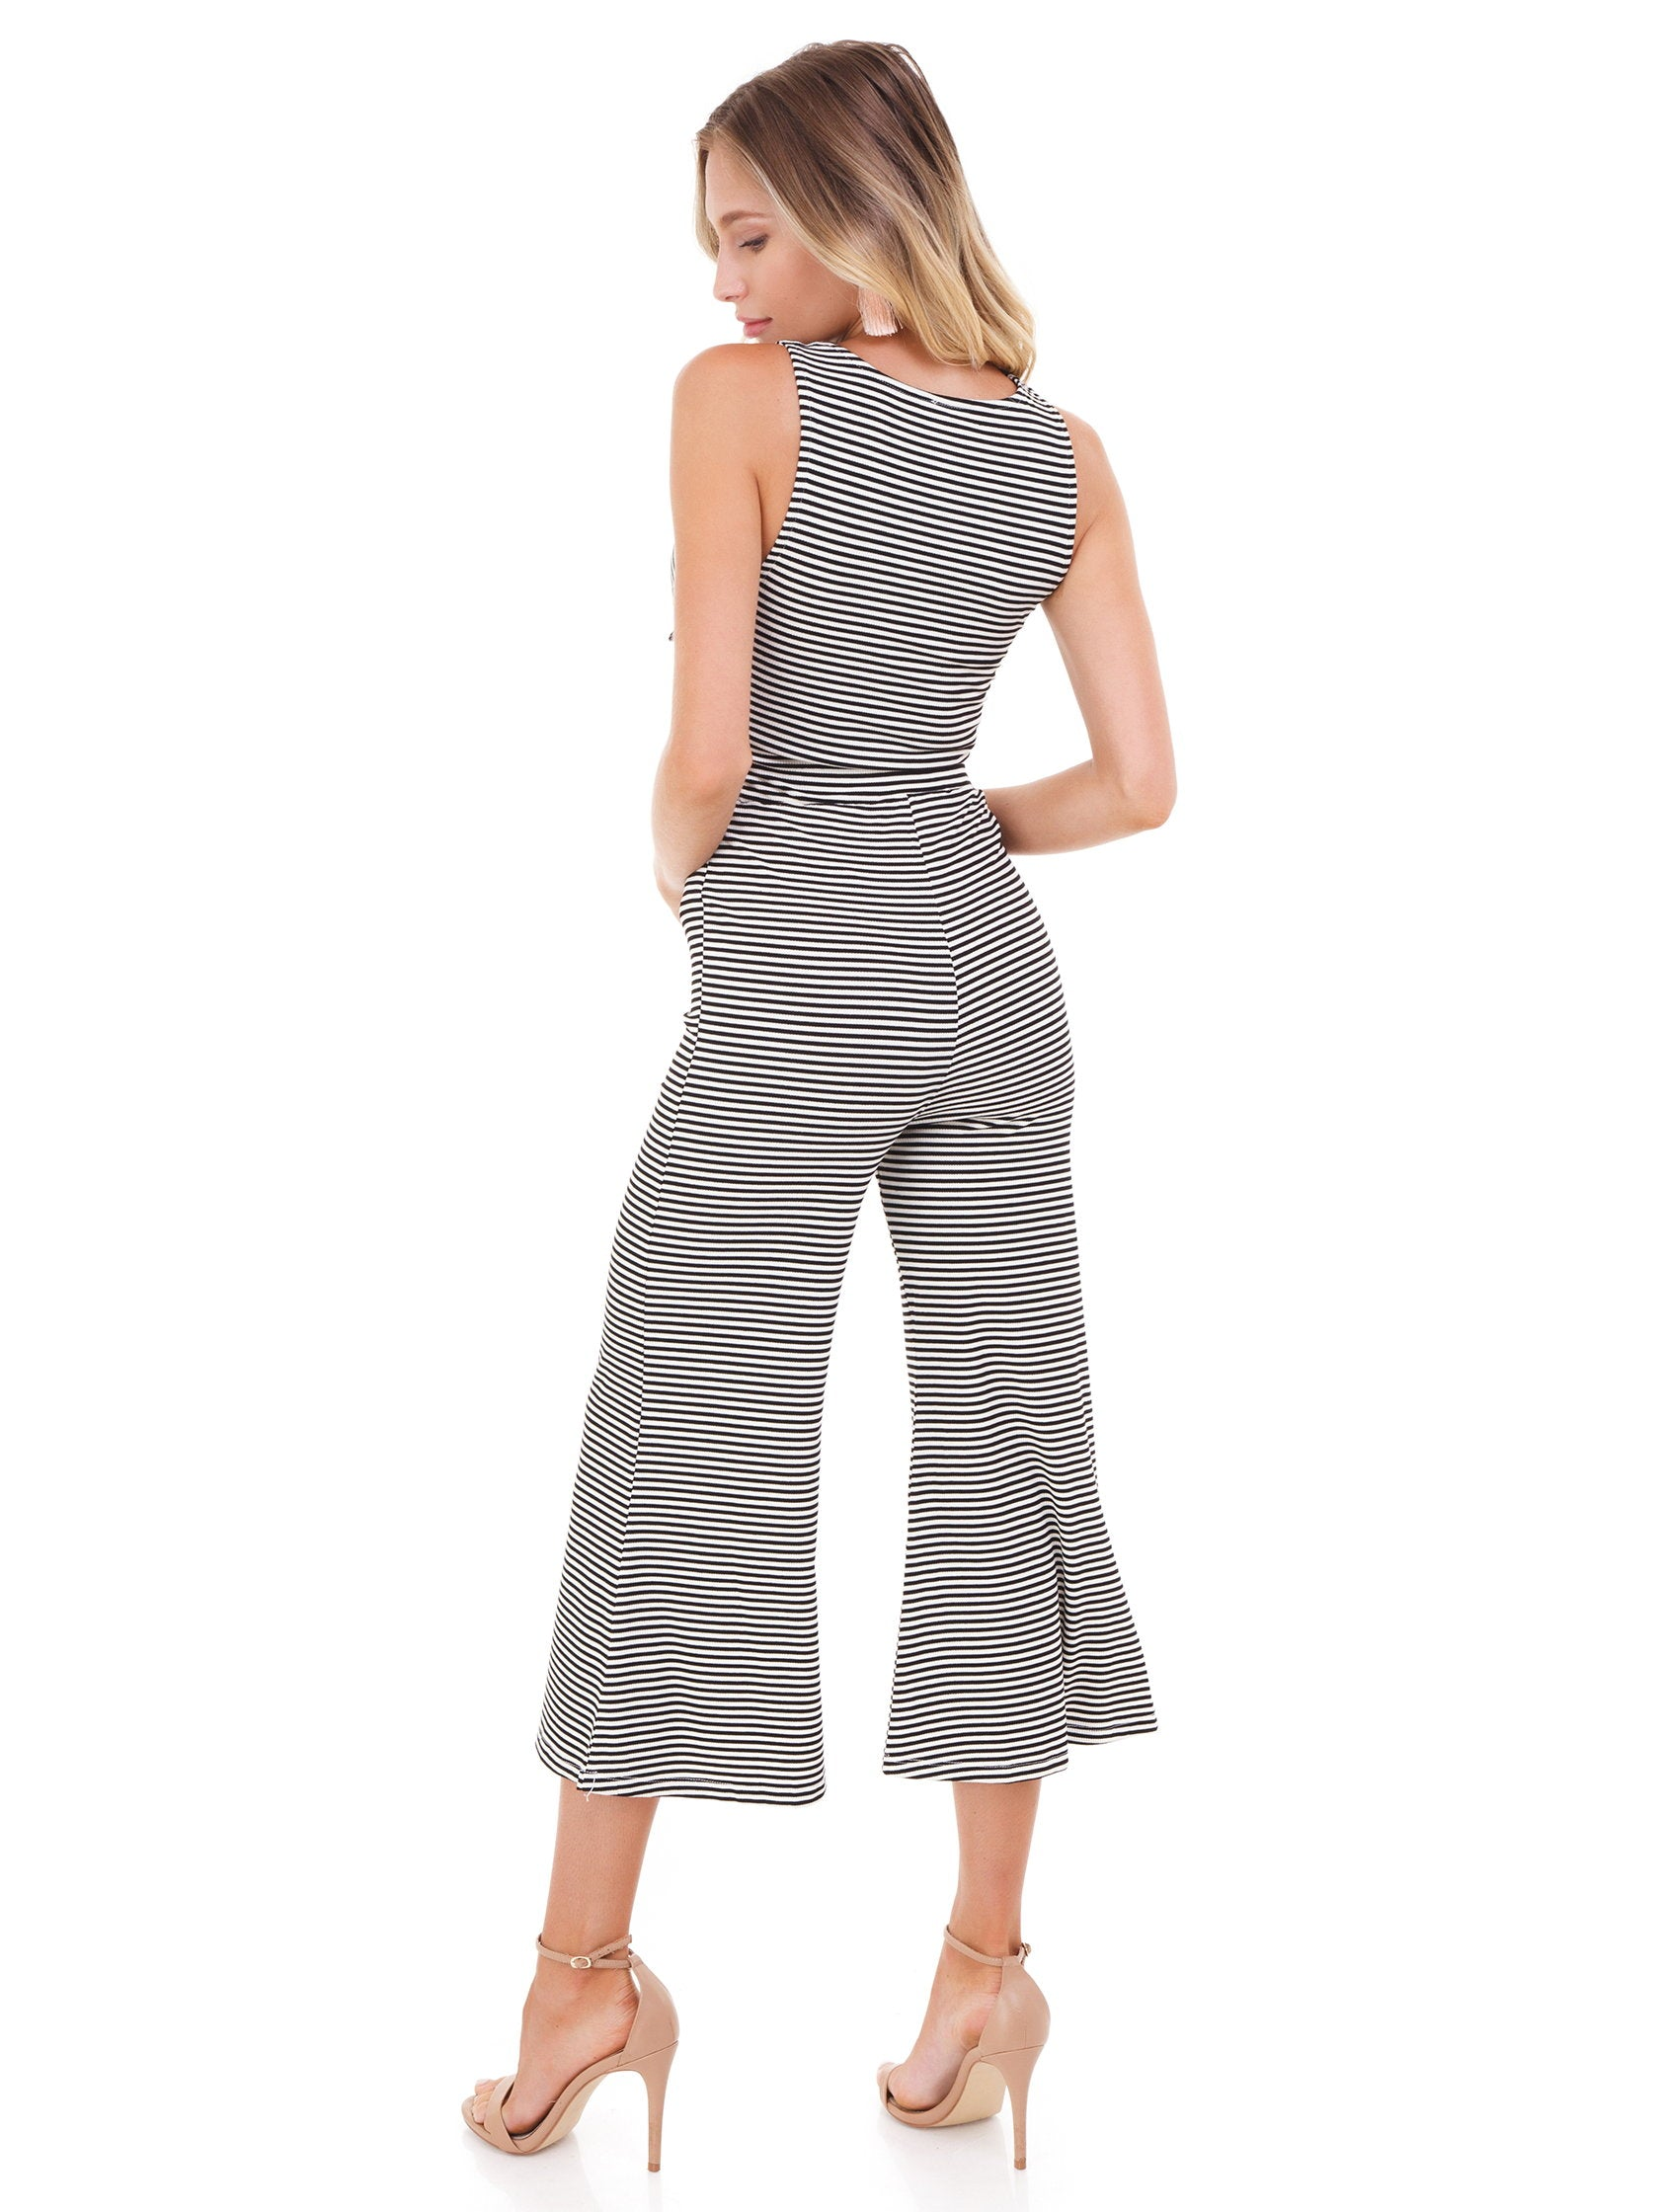 Women wearing a jumpsuit rental from FashionPass called Stripe Cropped Jumpsuit